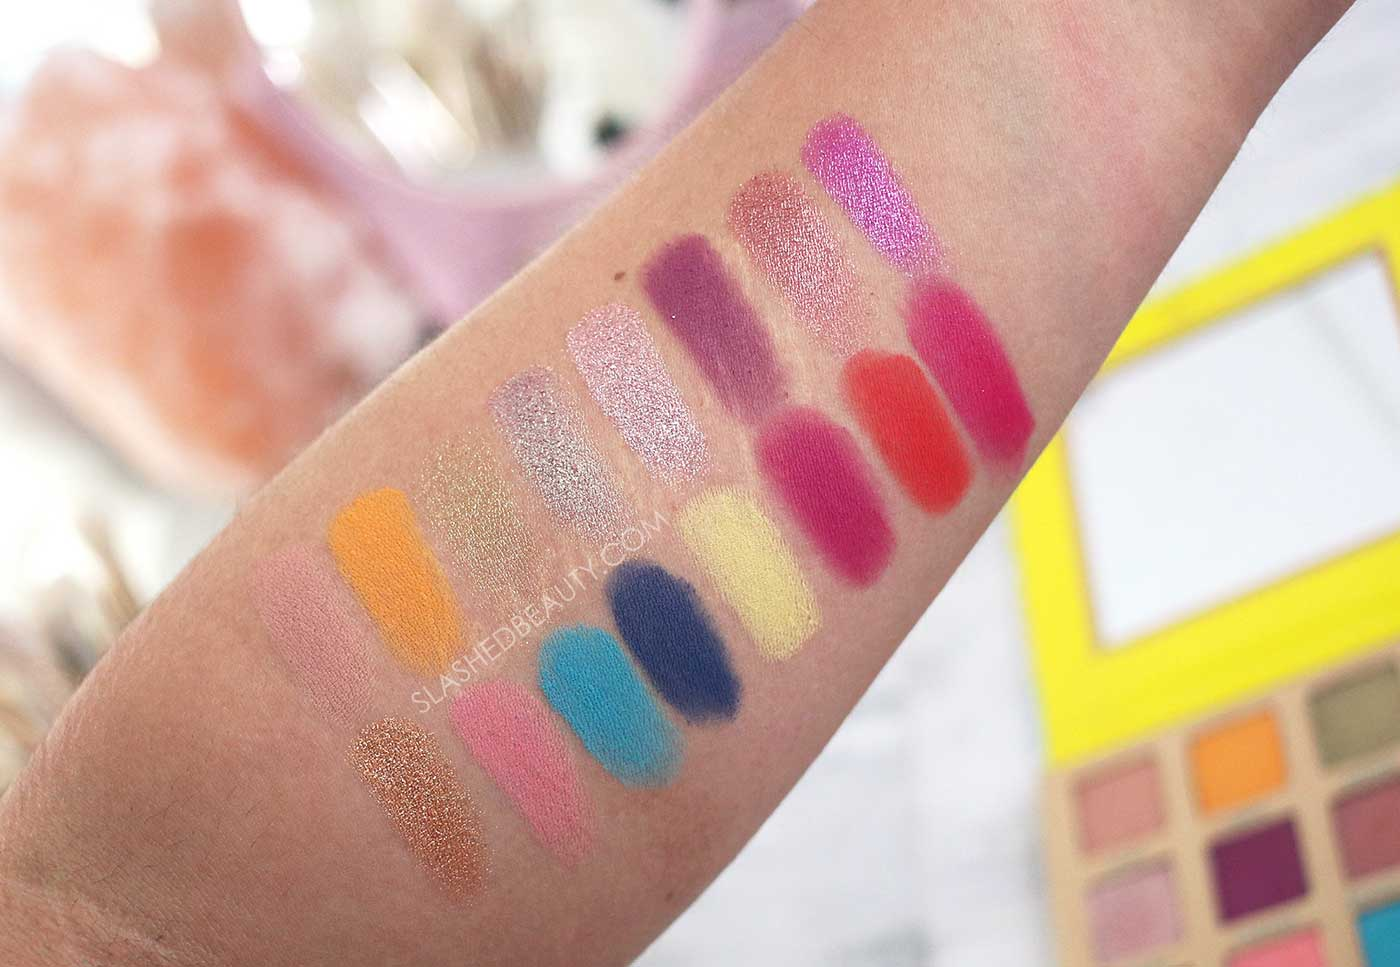 BH Cosmetics Summer in St. Tropez Palette Swatches | Bright Spring Summer Eyeshadow Palette | Slashed Beauty